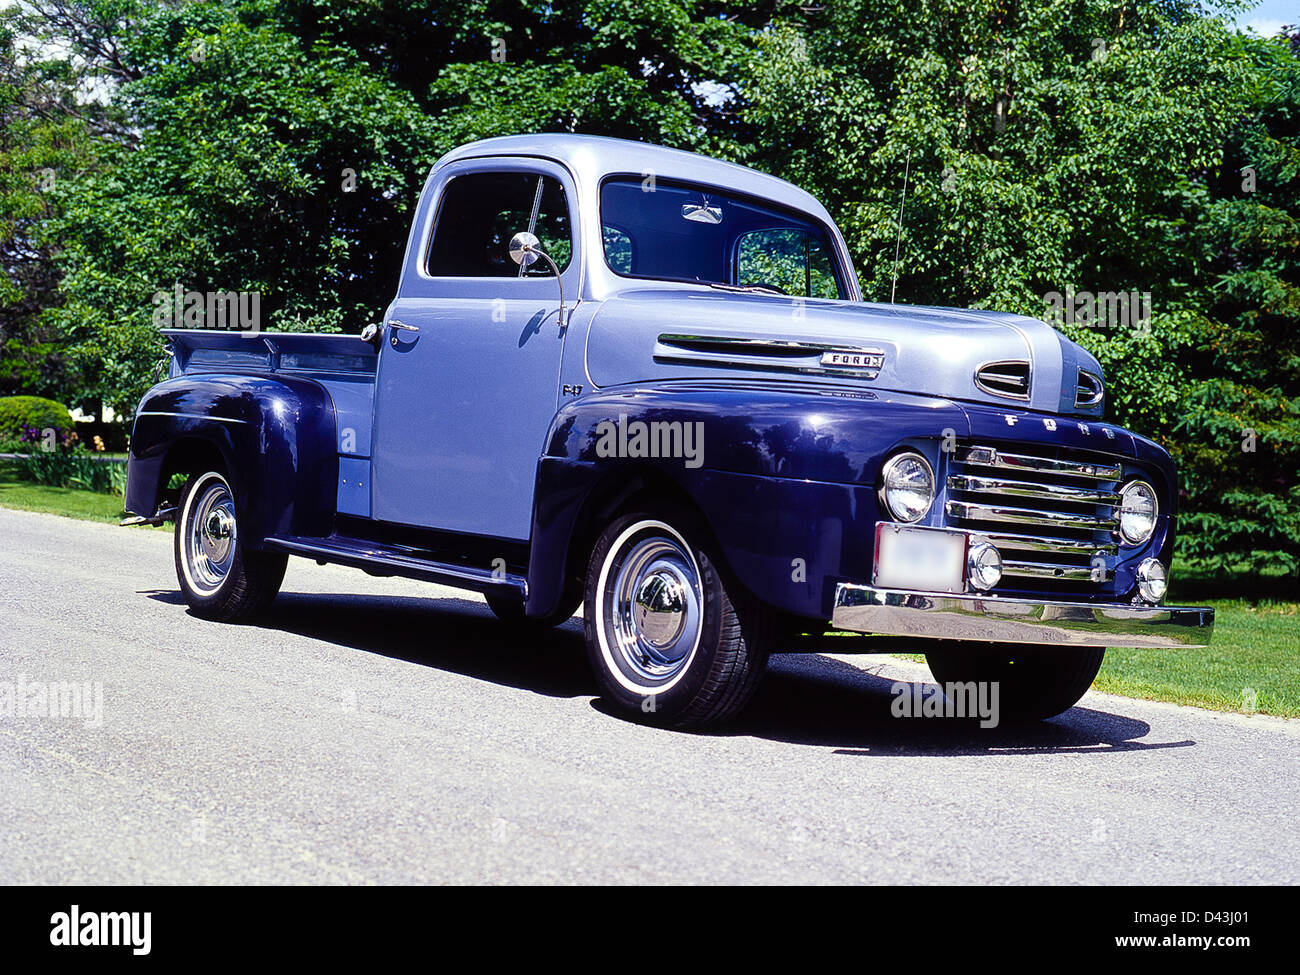 1950 ford f 47 pick up truck stock photo 54169697 alamy. Black Bedroom Furniture Sets. Home Design Ideas